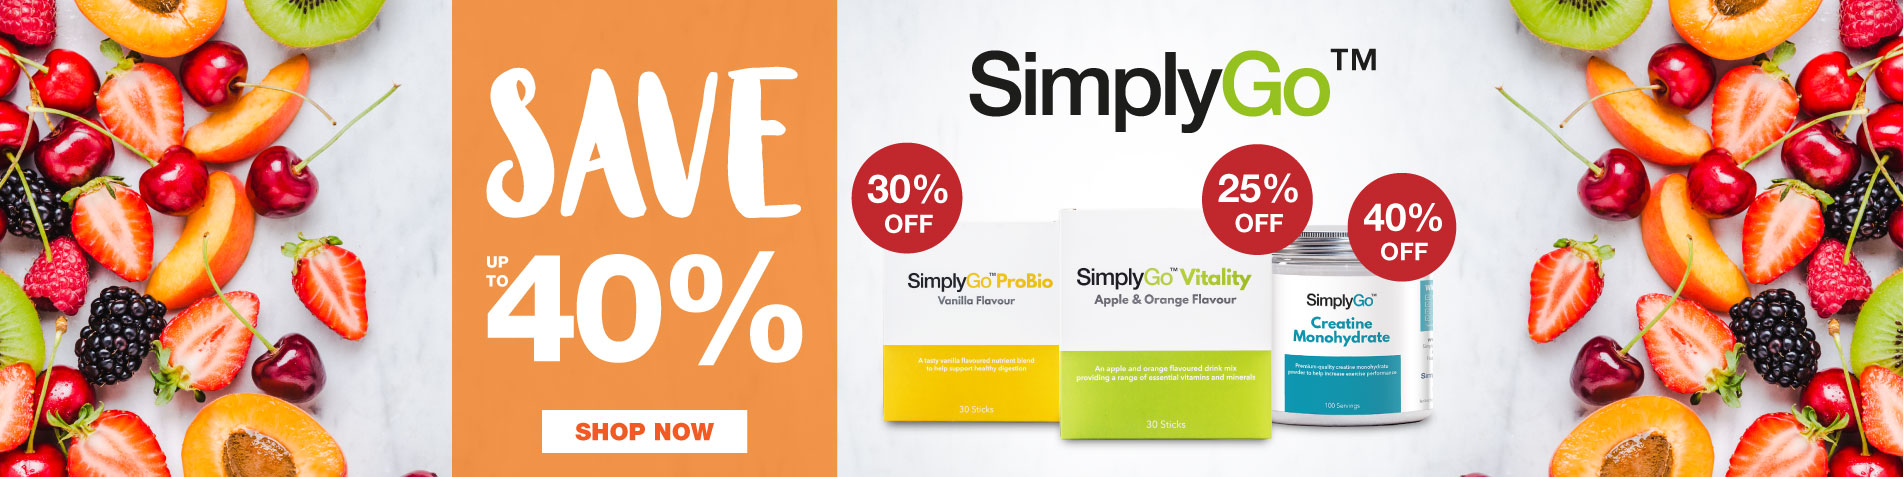 SimplyGo - up to 40% off